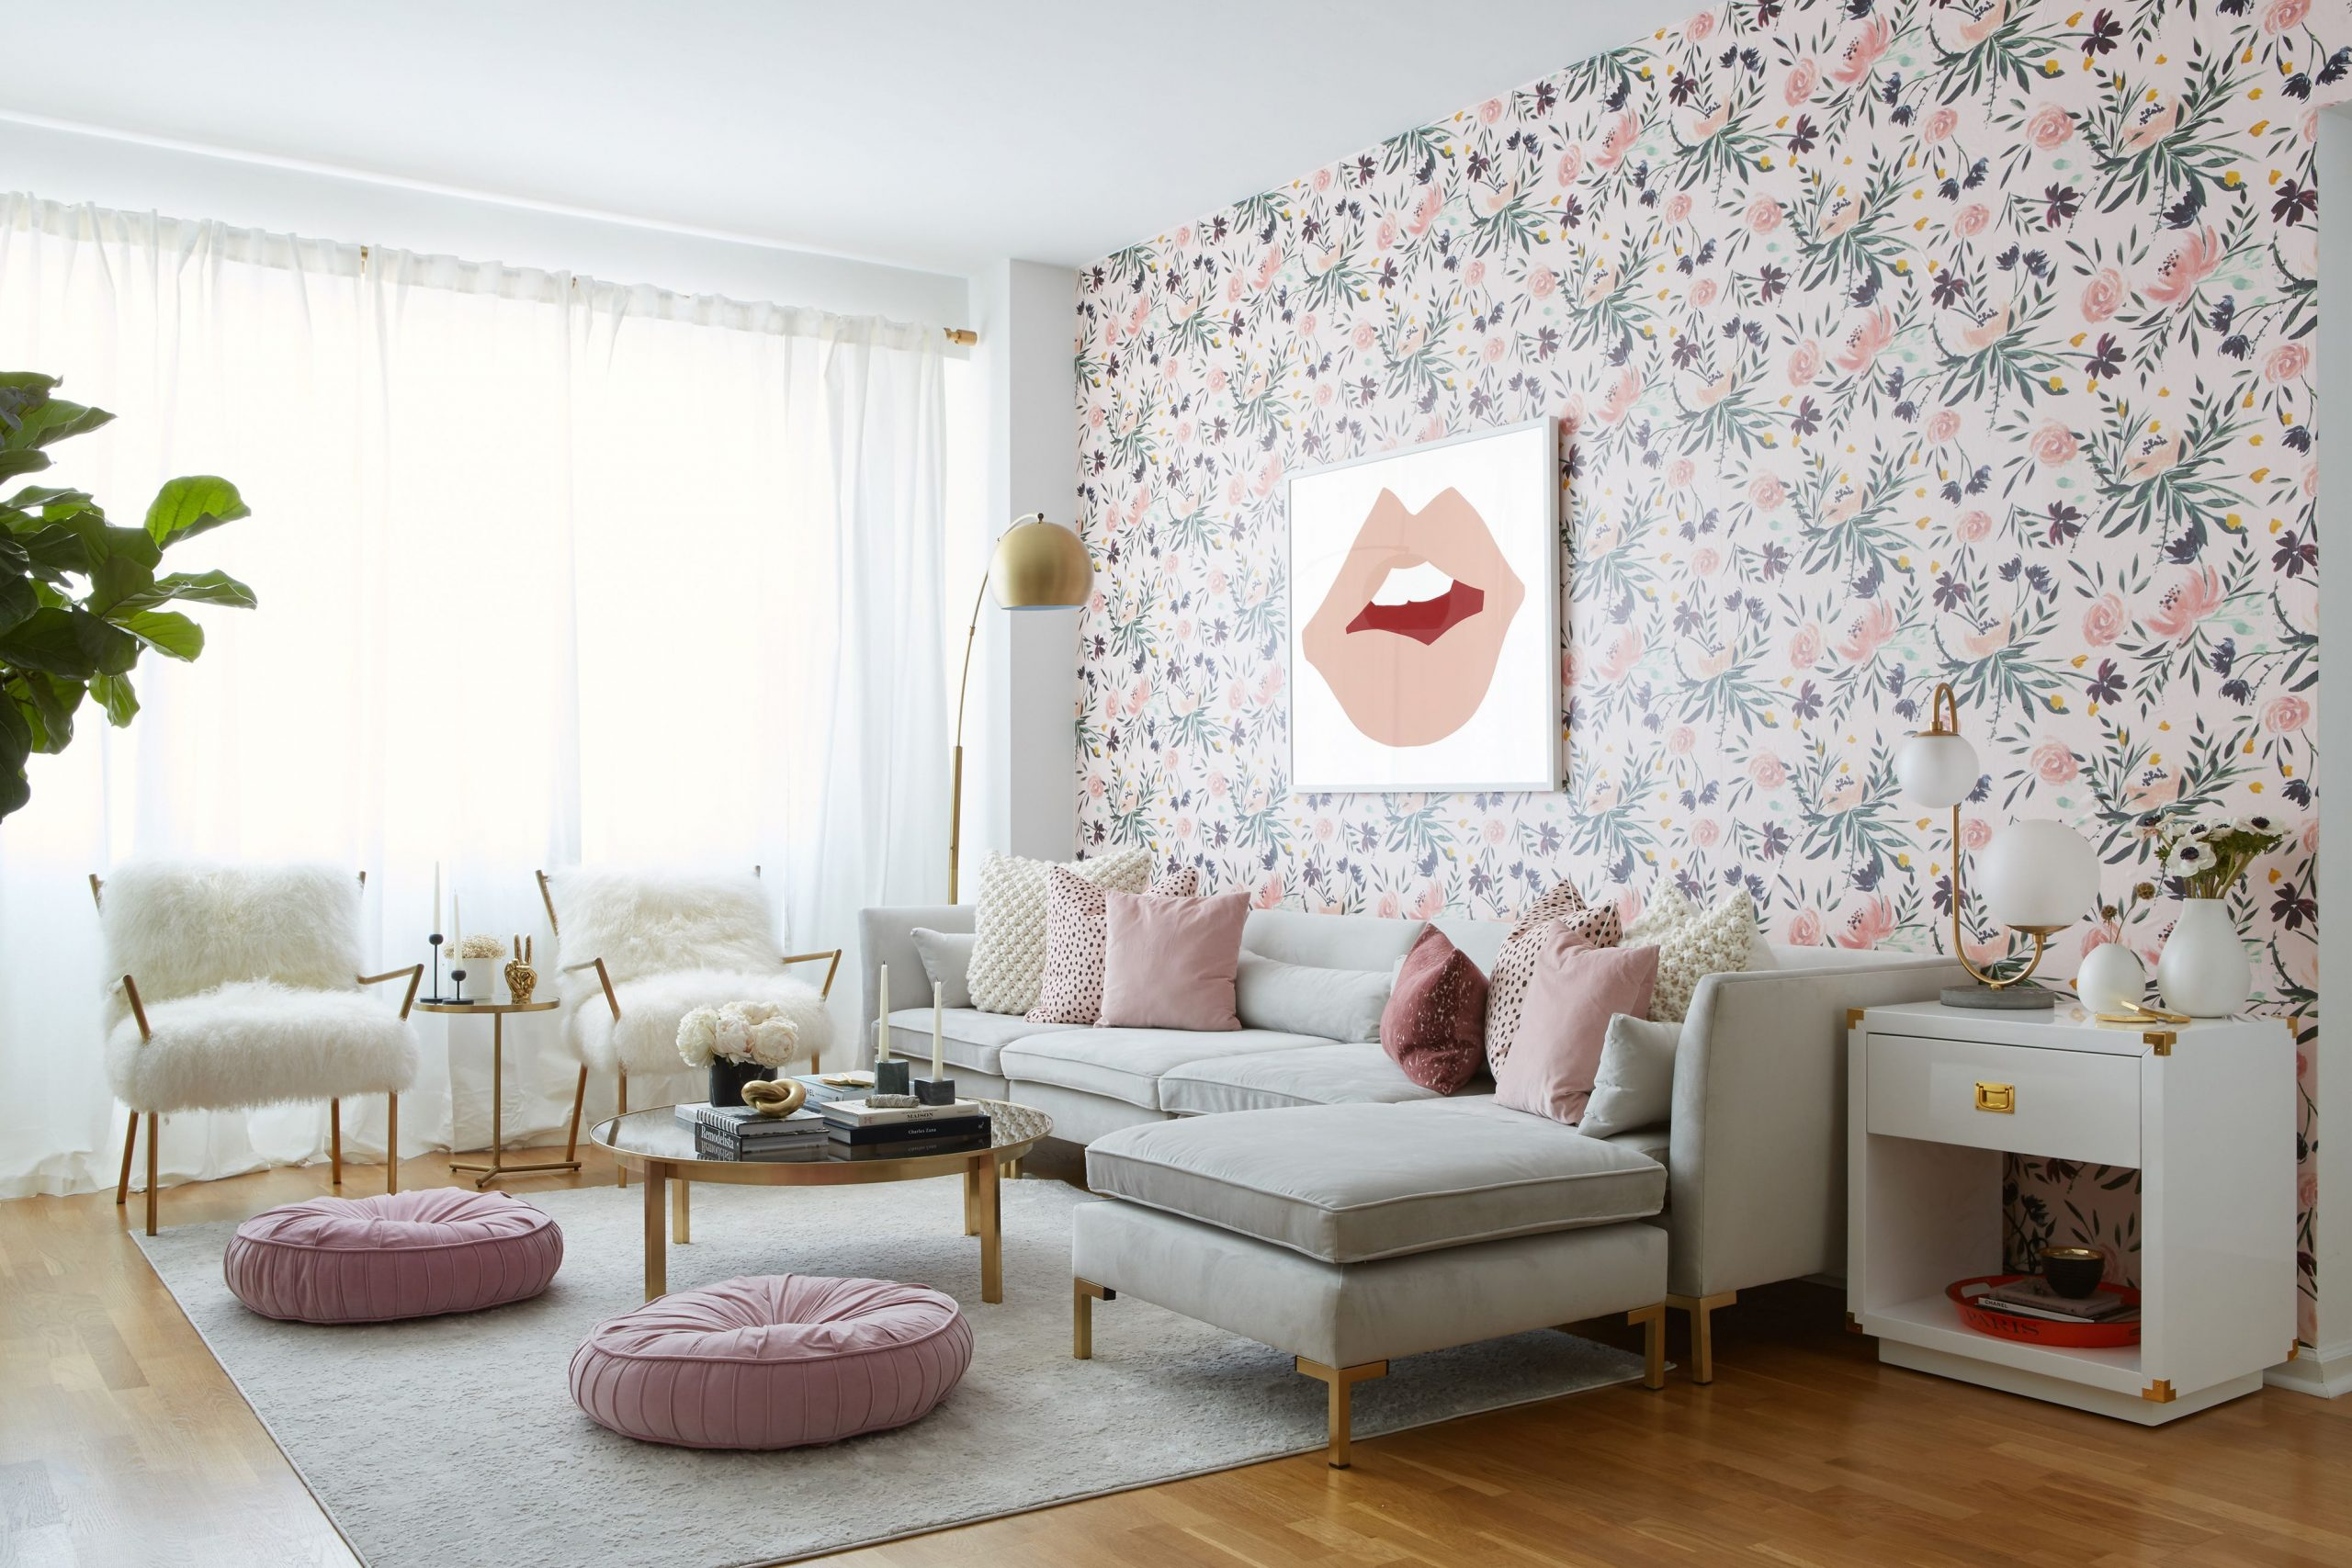 What is Included in Interior Design Services